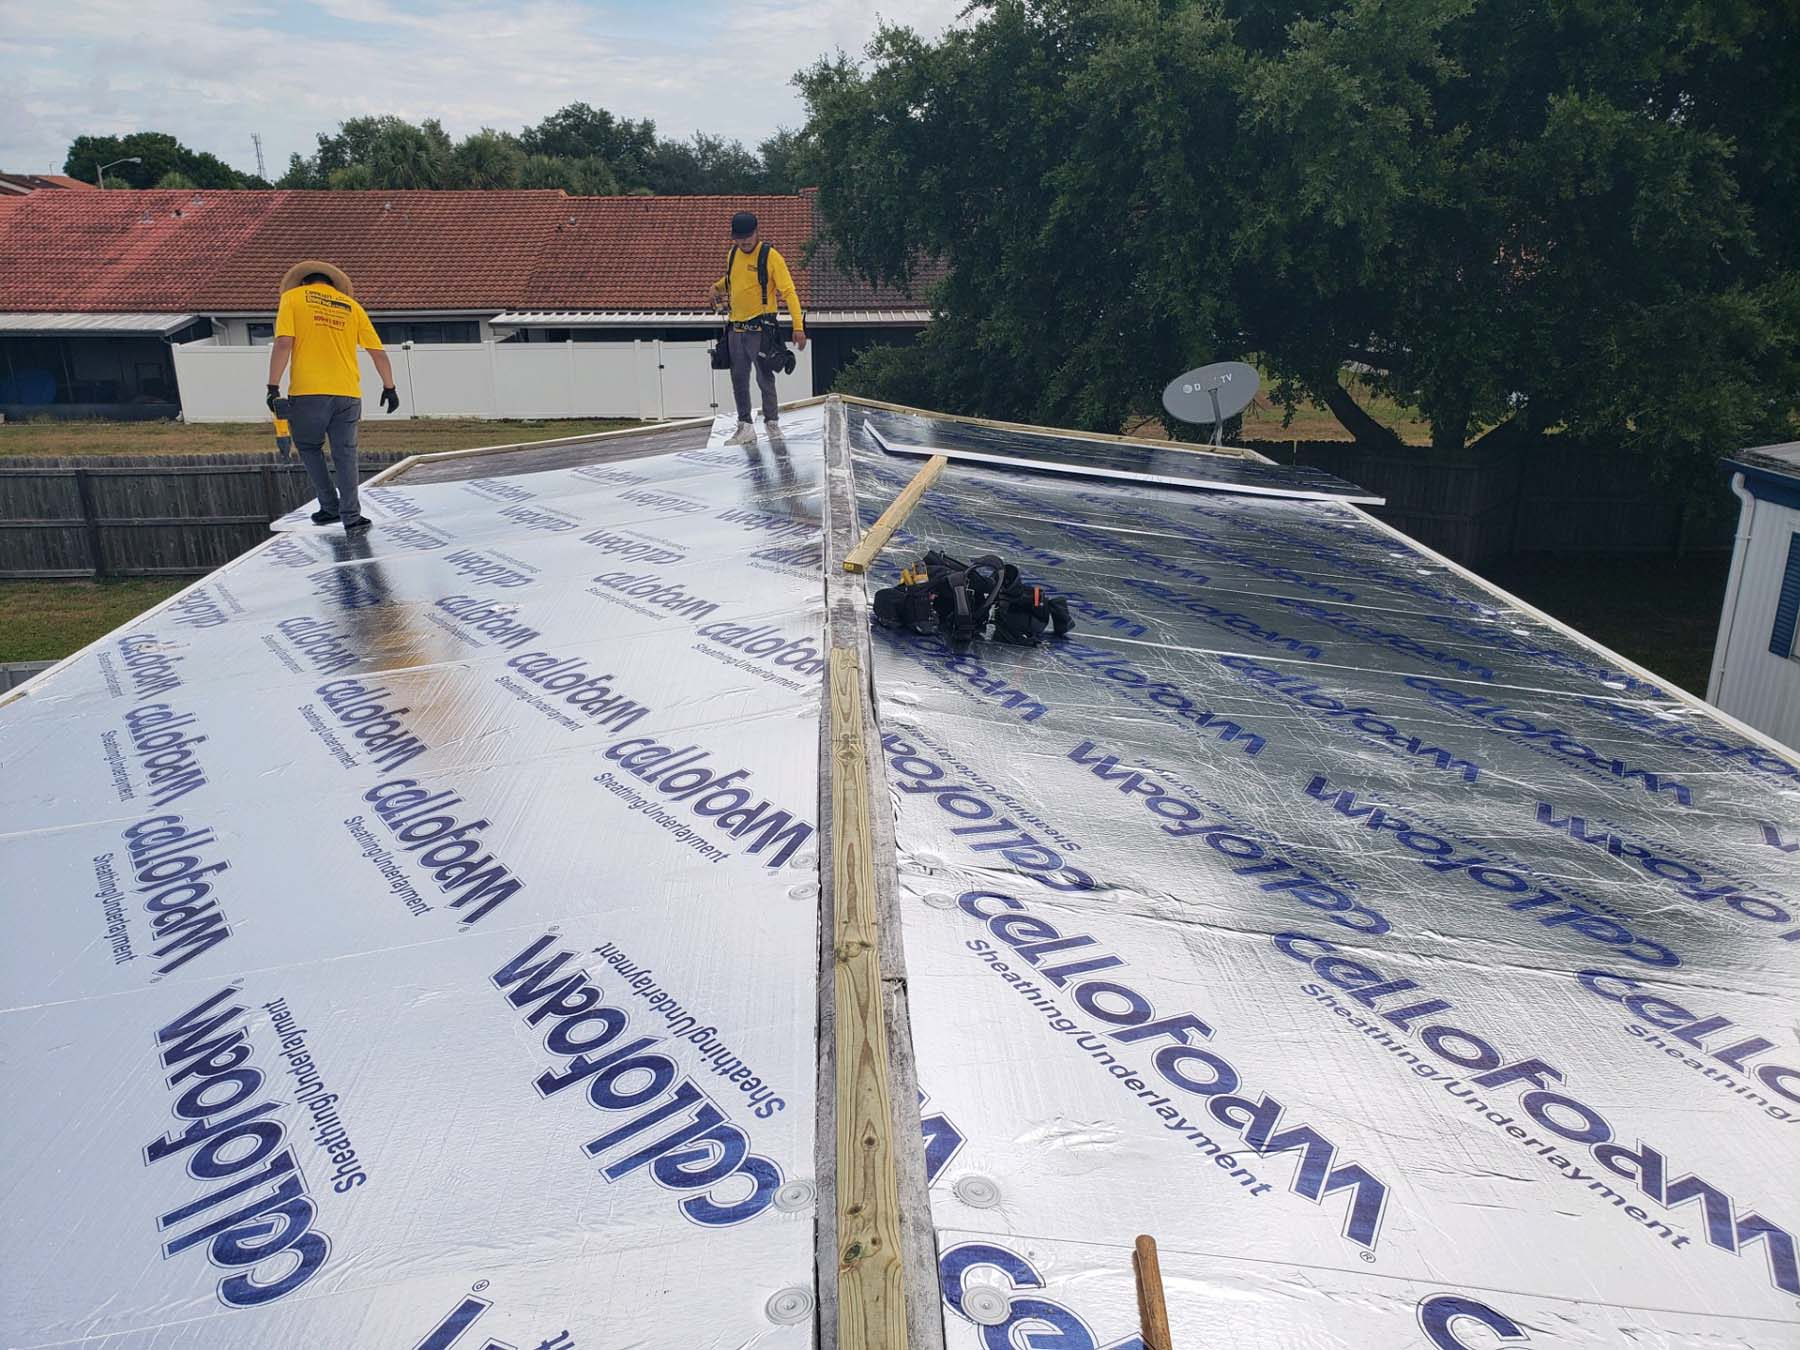 roof-overs-largo-fl-4 Mobile Home Roof Overs Florida on mobile home roofing costs, mobile home decks, mobile home metal roofing materials, mobile home construction, mobile home room additions florida,